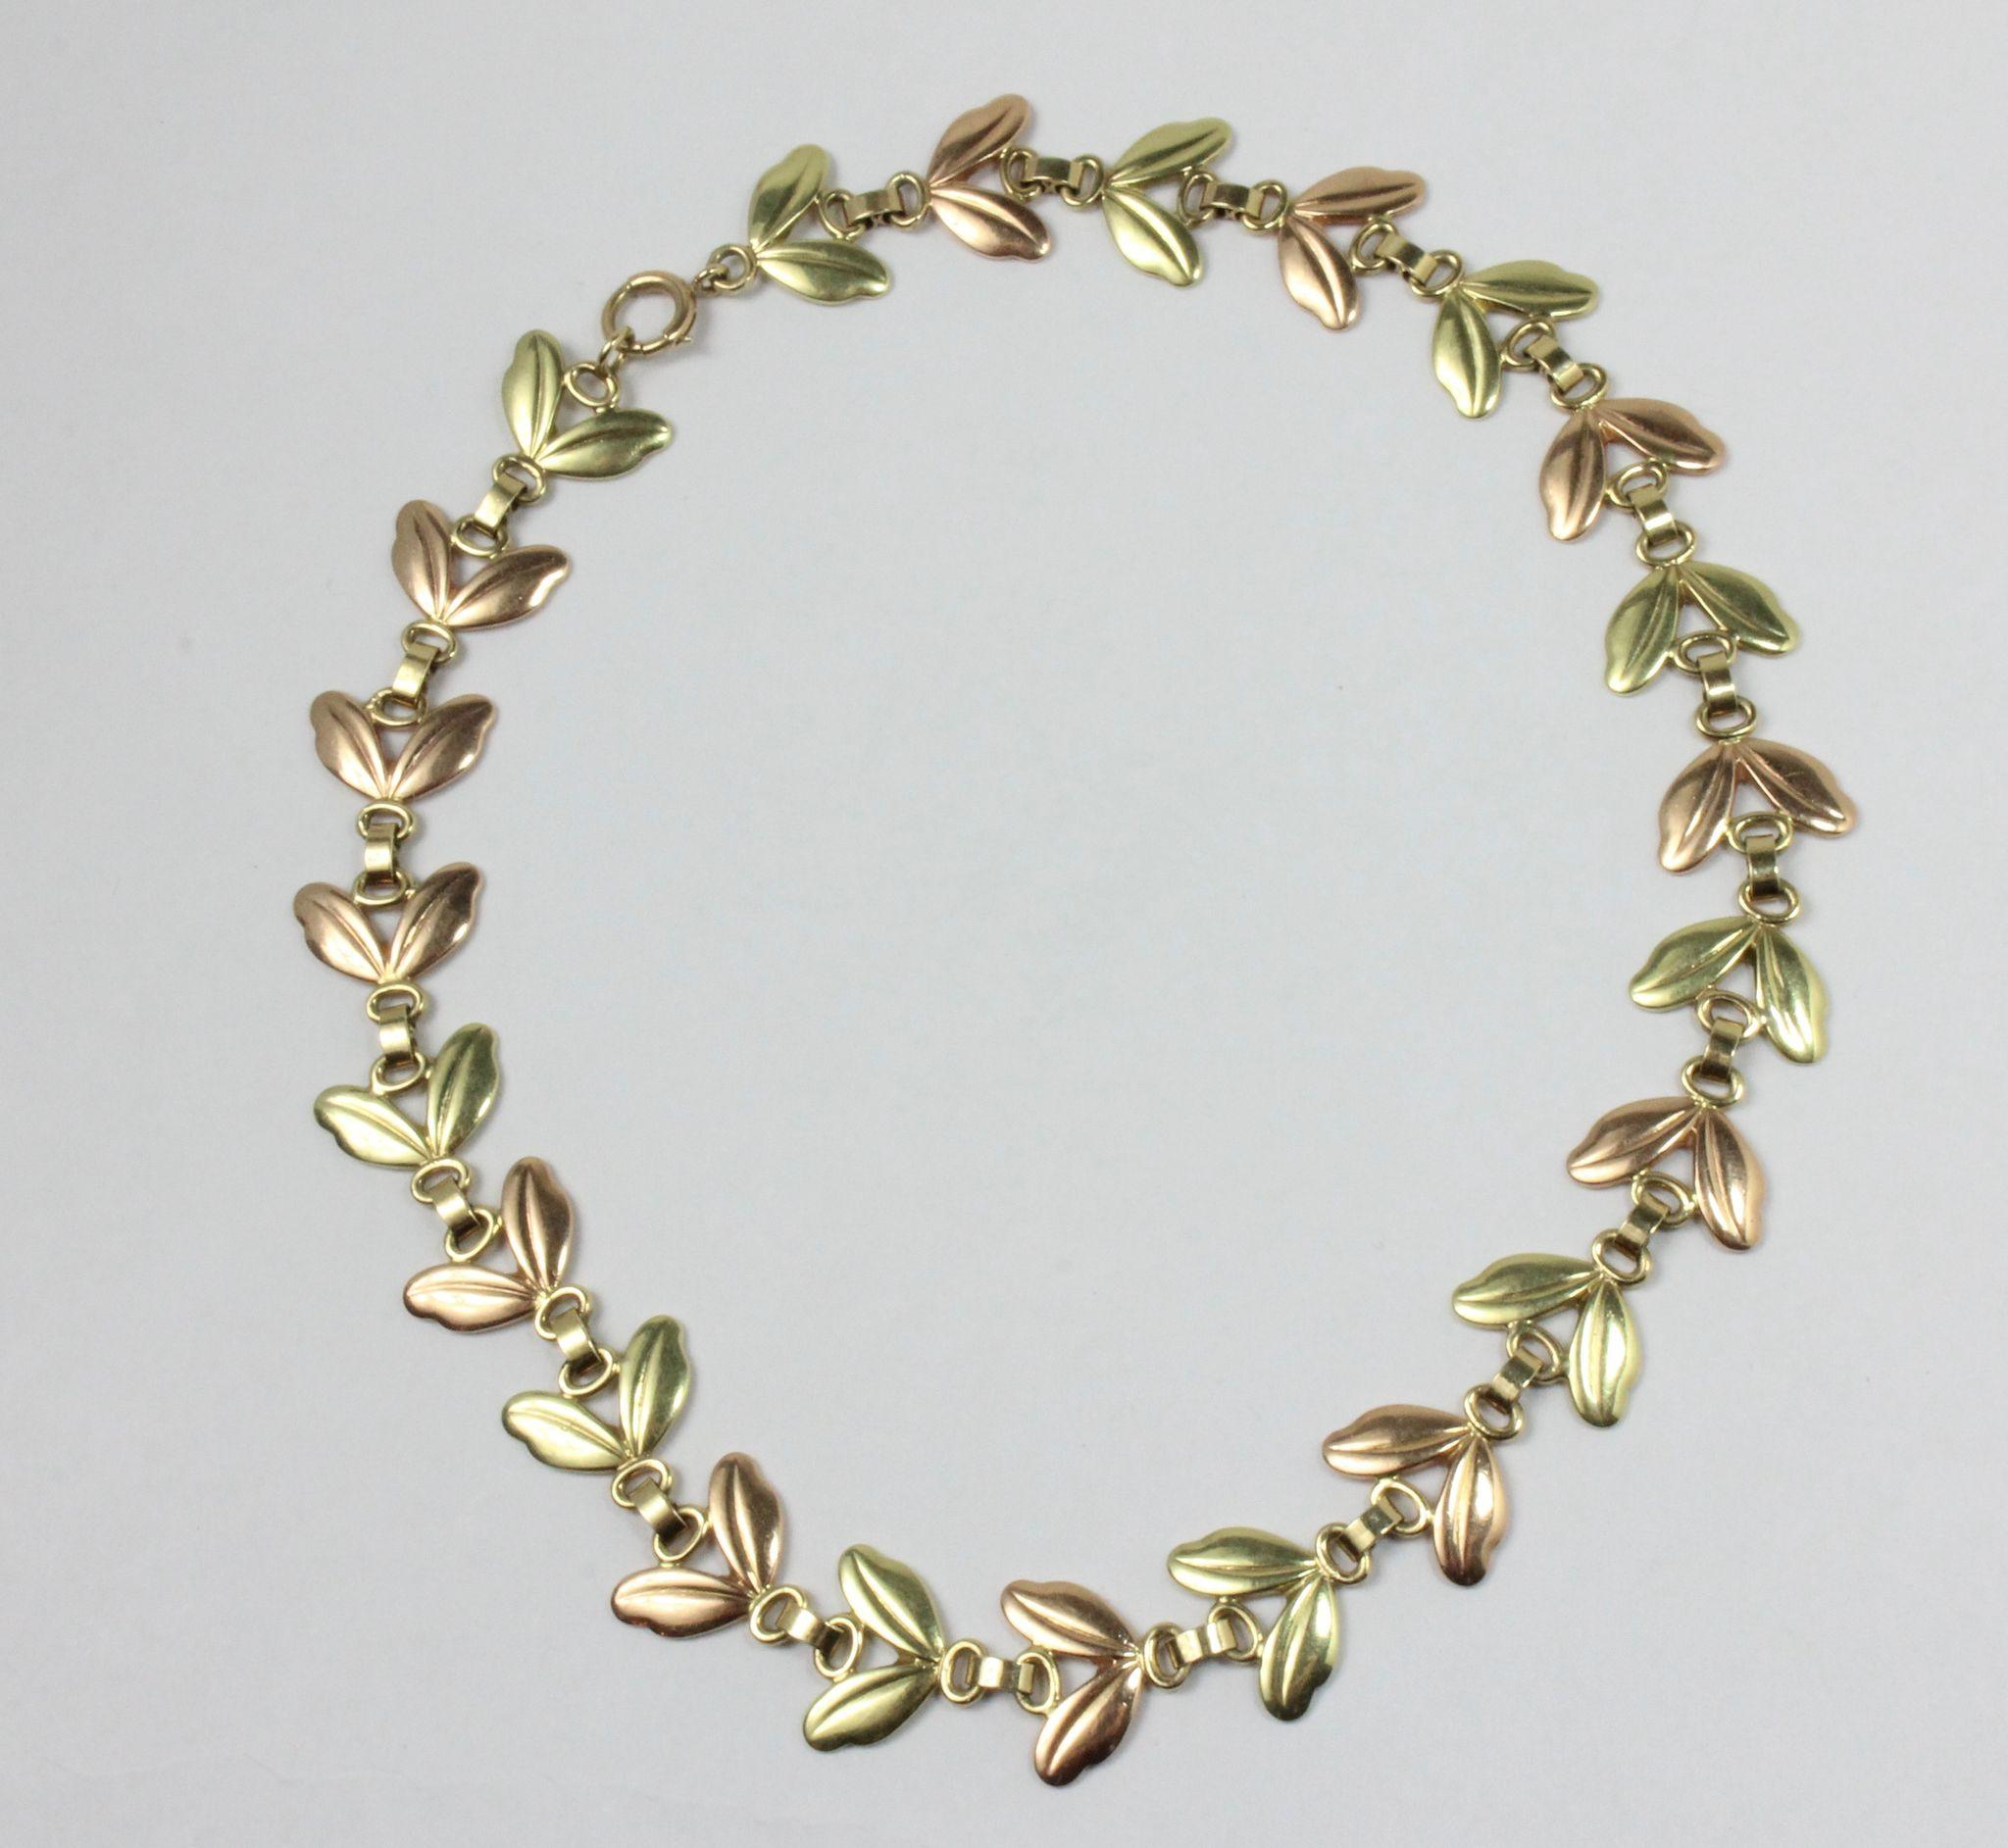 Vintage 1940s Tiffany & Co 14K Rose and Green Gold Choker Retro